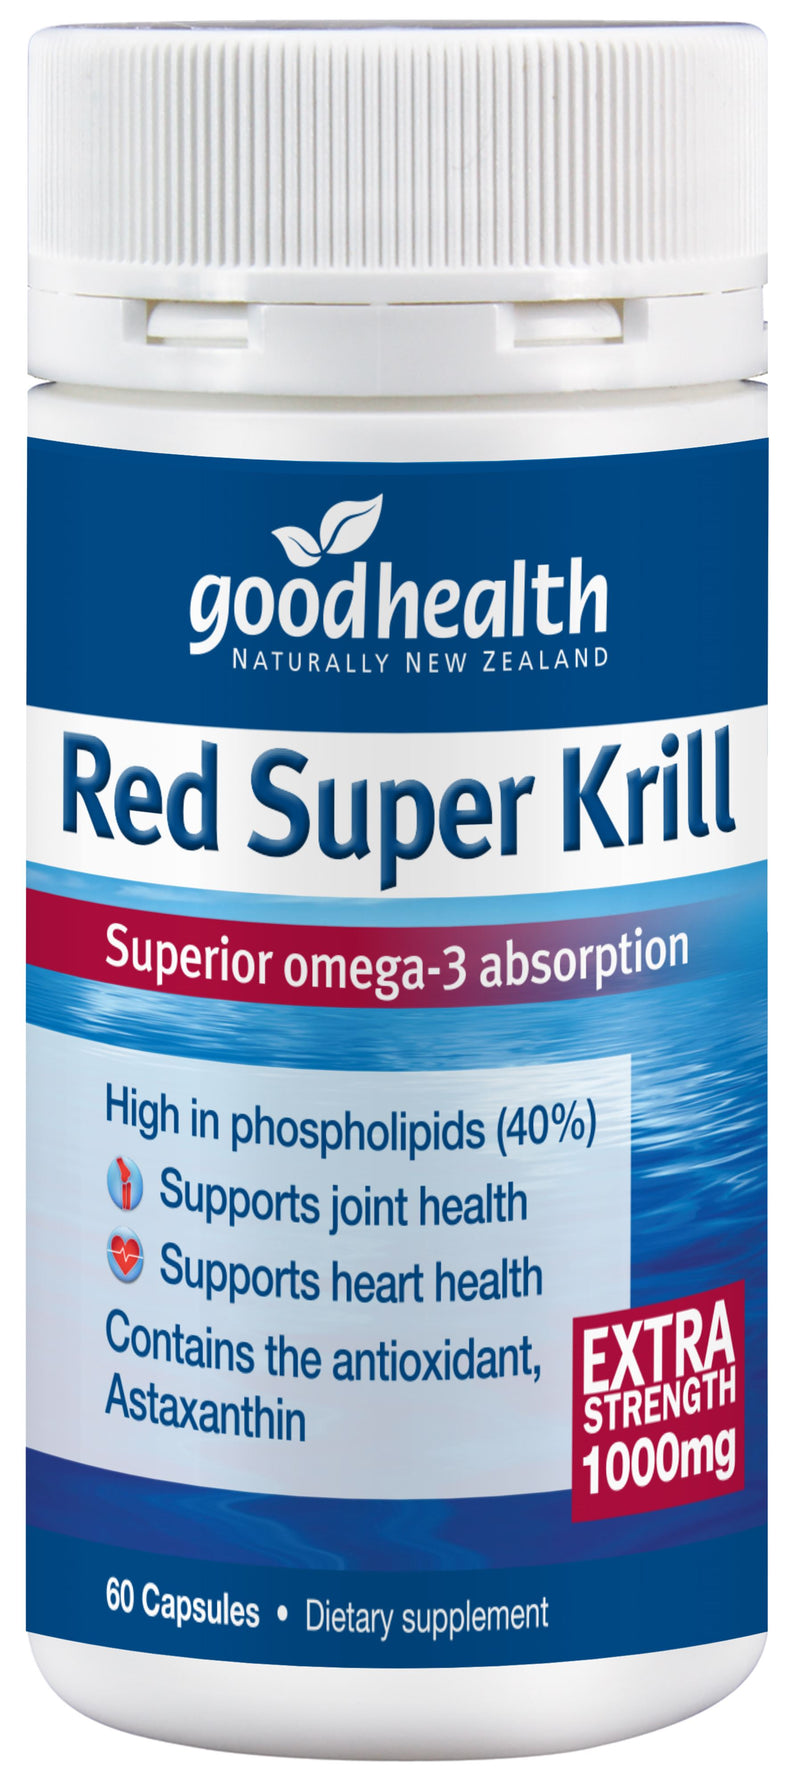 Red Super Krill Extra Strength 1000mg - 60 Capsules